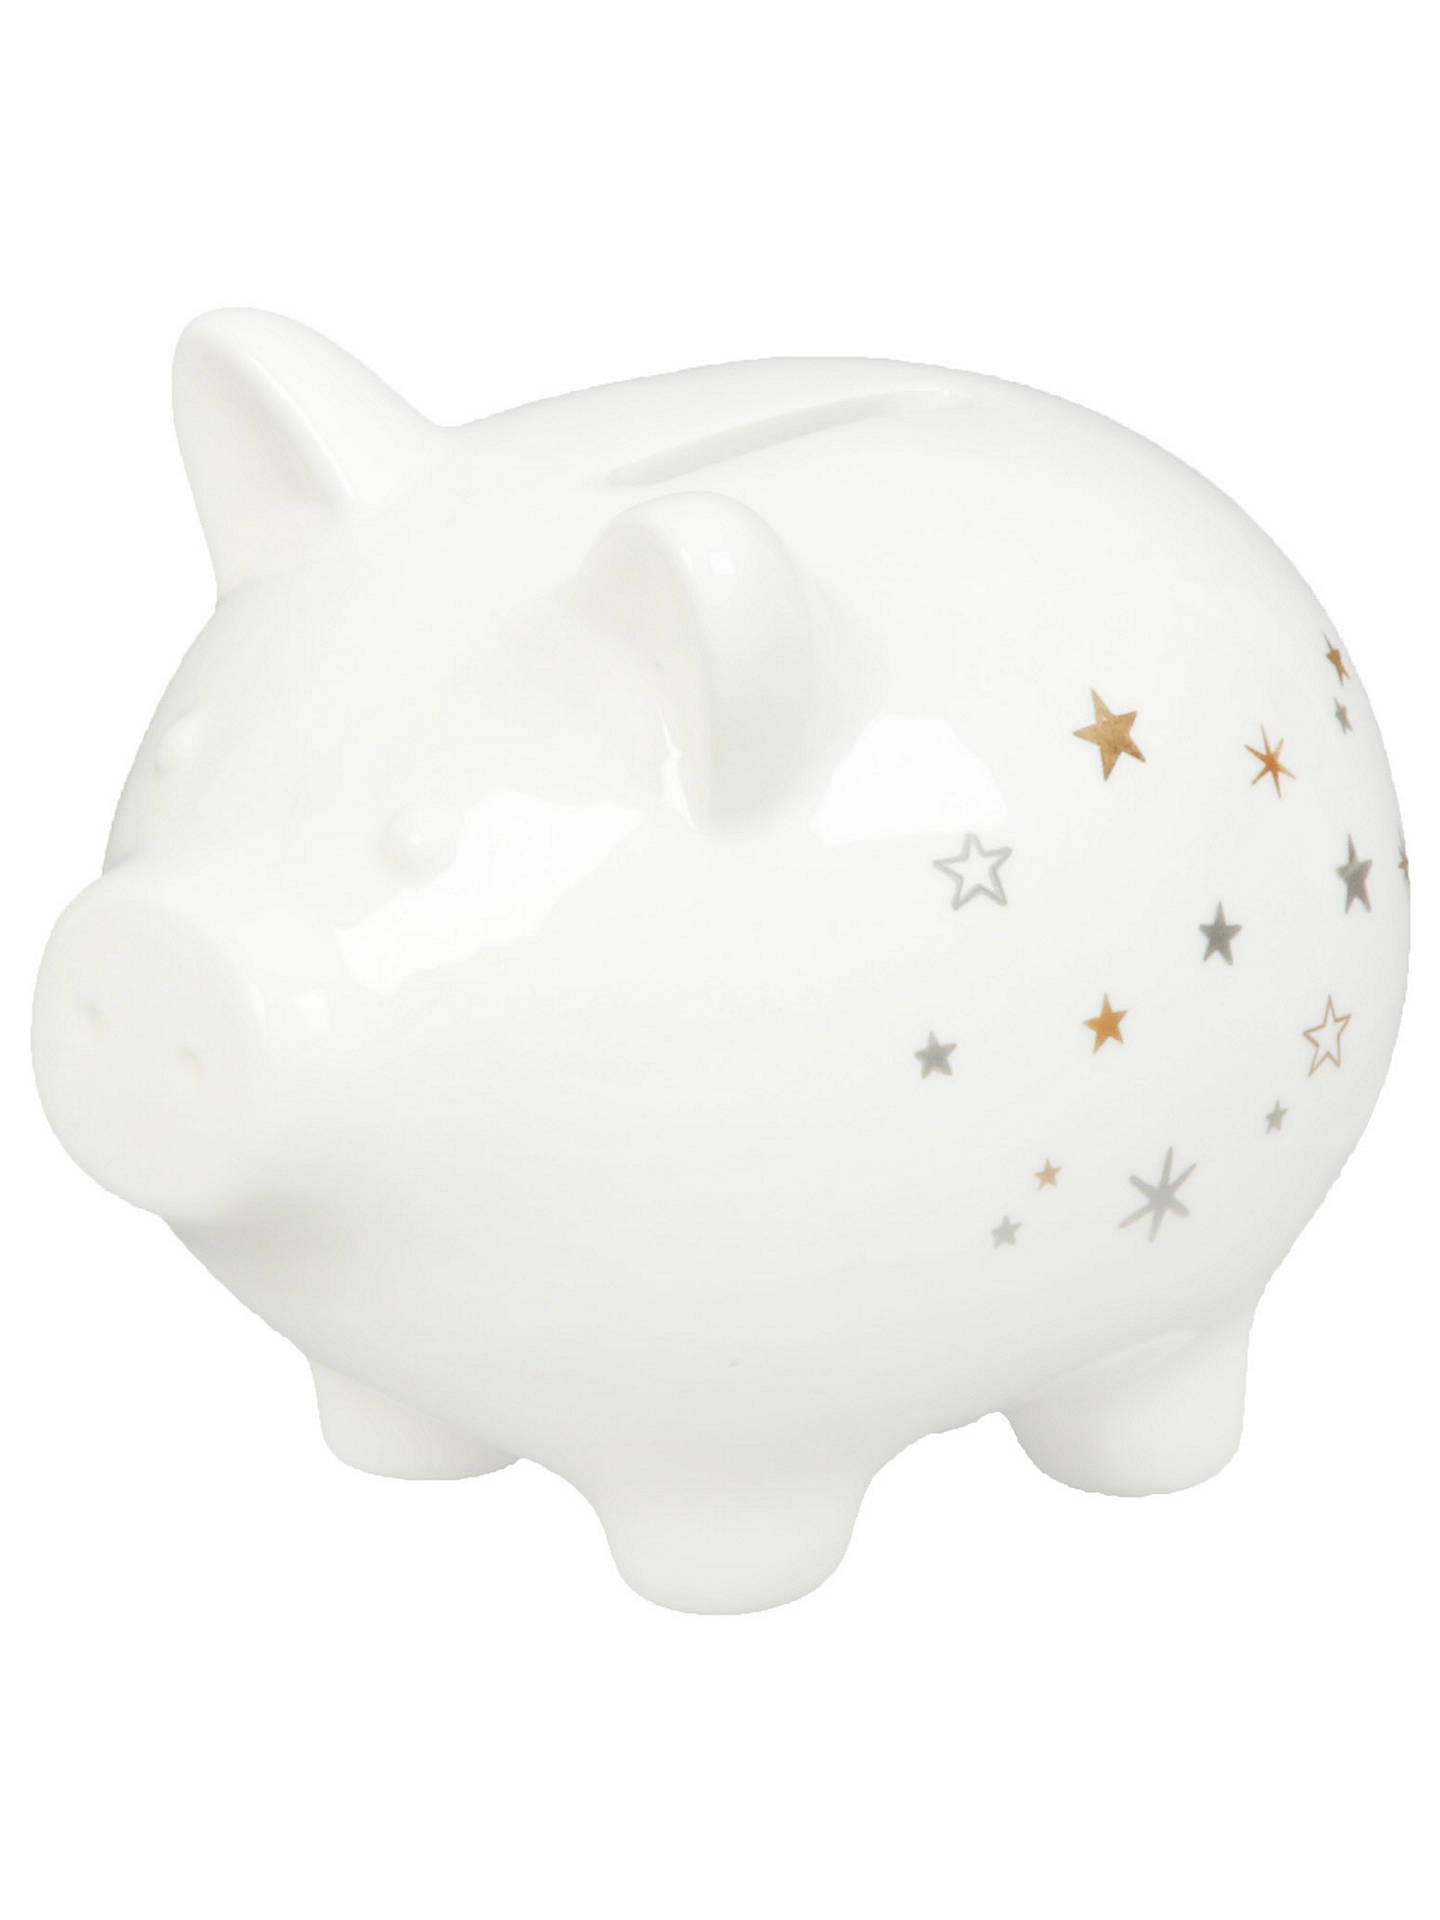 a100b268a782 ... Buy John Lewis & Partners Piggy Bank, Gold/Silver Online at johnlewis.  ...